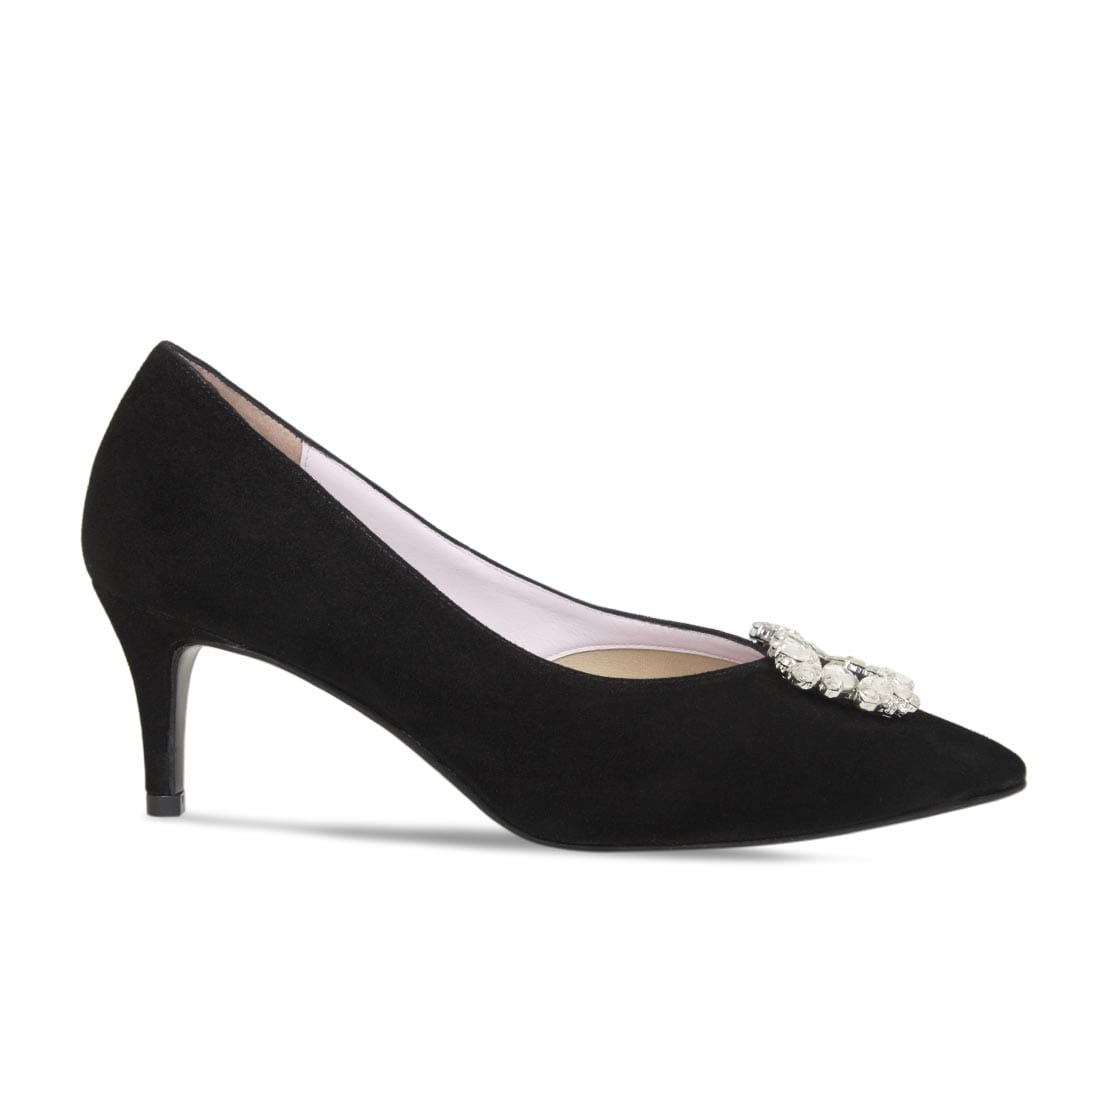 Black Suede Mid-Heel Embellished Pumps